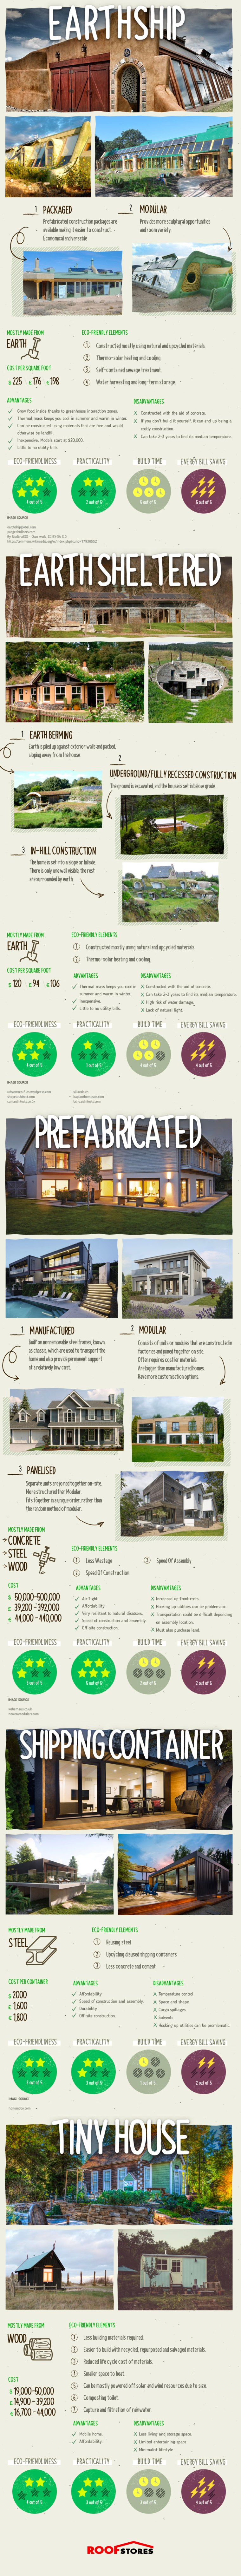 Eco-House Designs [Infographic] | ecogreenlove